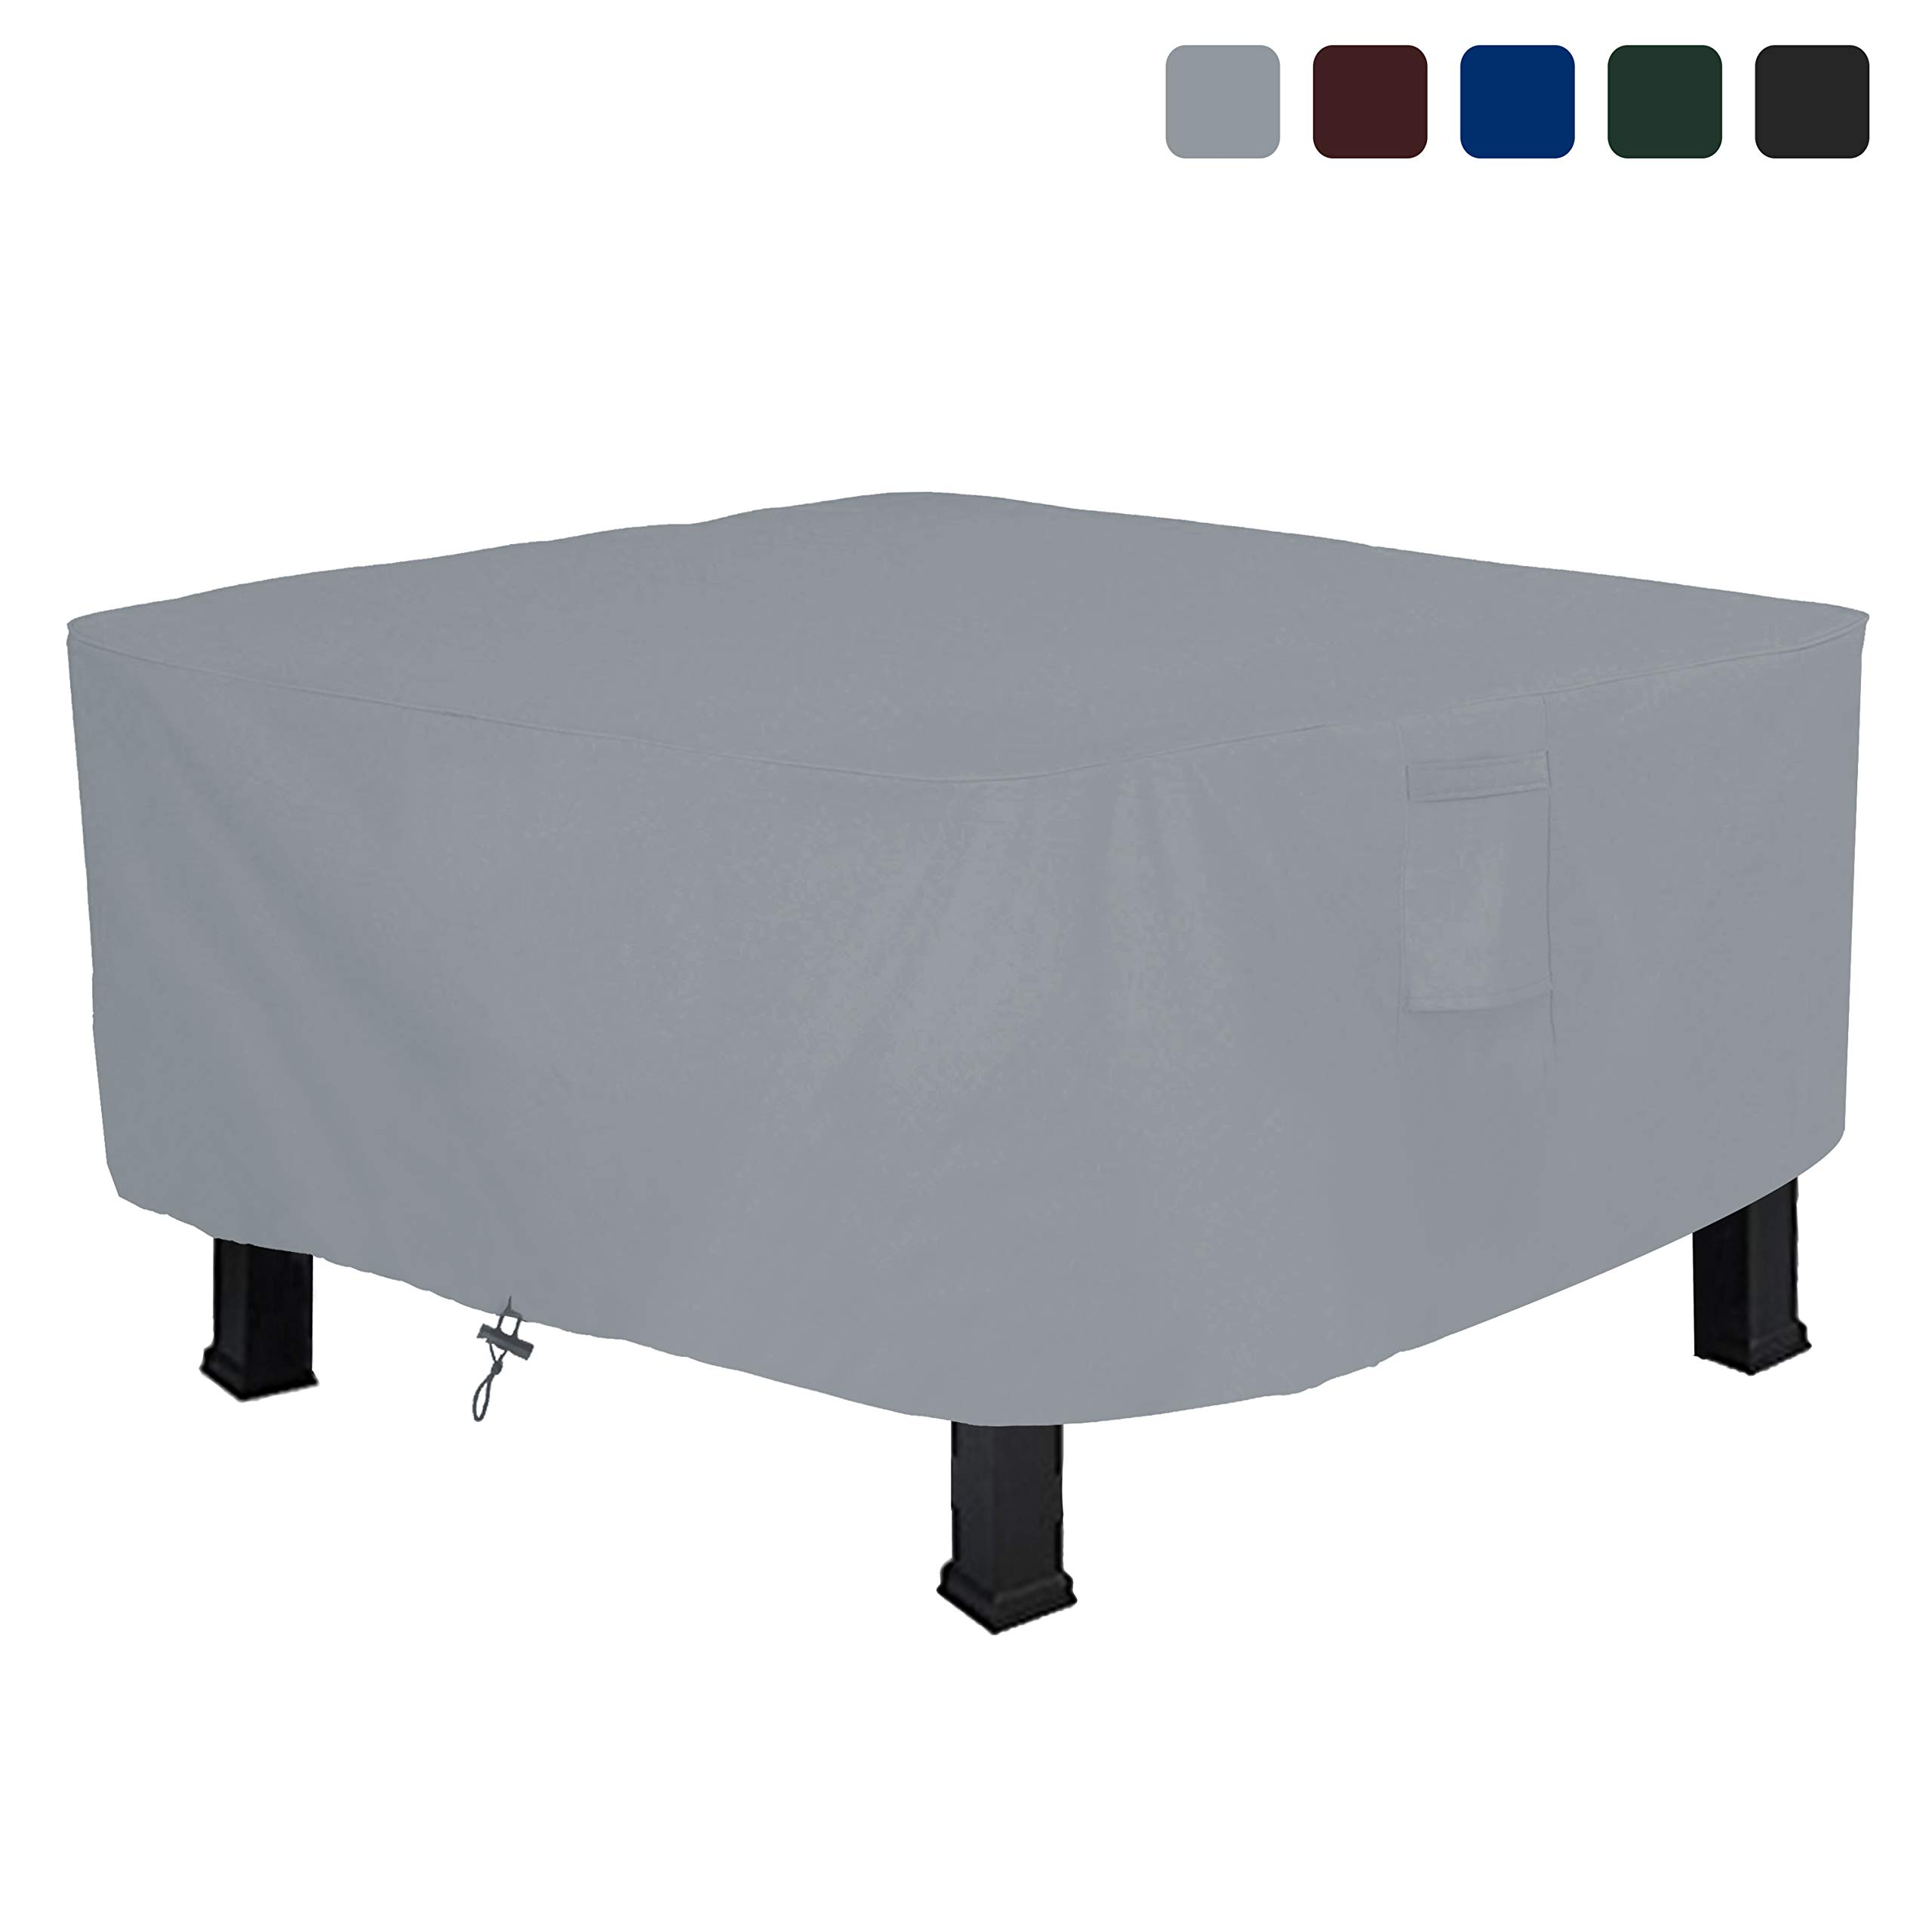 Fire Pit Cover Square 18 Oz Waterproof - 100% UV & Weather Resistant Custom Size Gas Fire Pit Cover with Air Pockets and Drawstring for Snug Fit (52'' L x 52'' W x 22'' H, Grey) by Covers & All